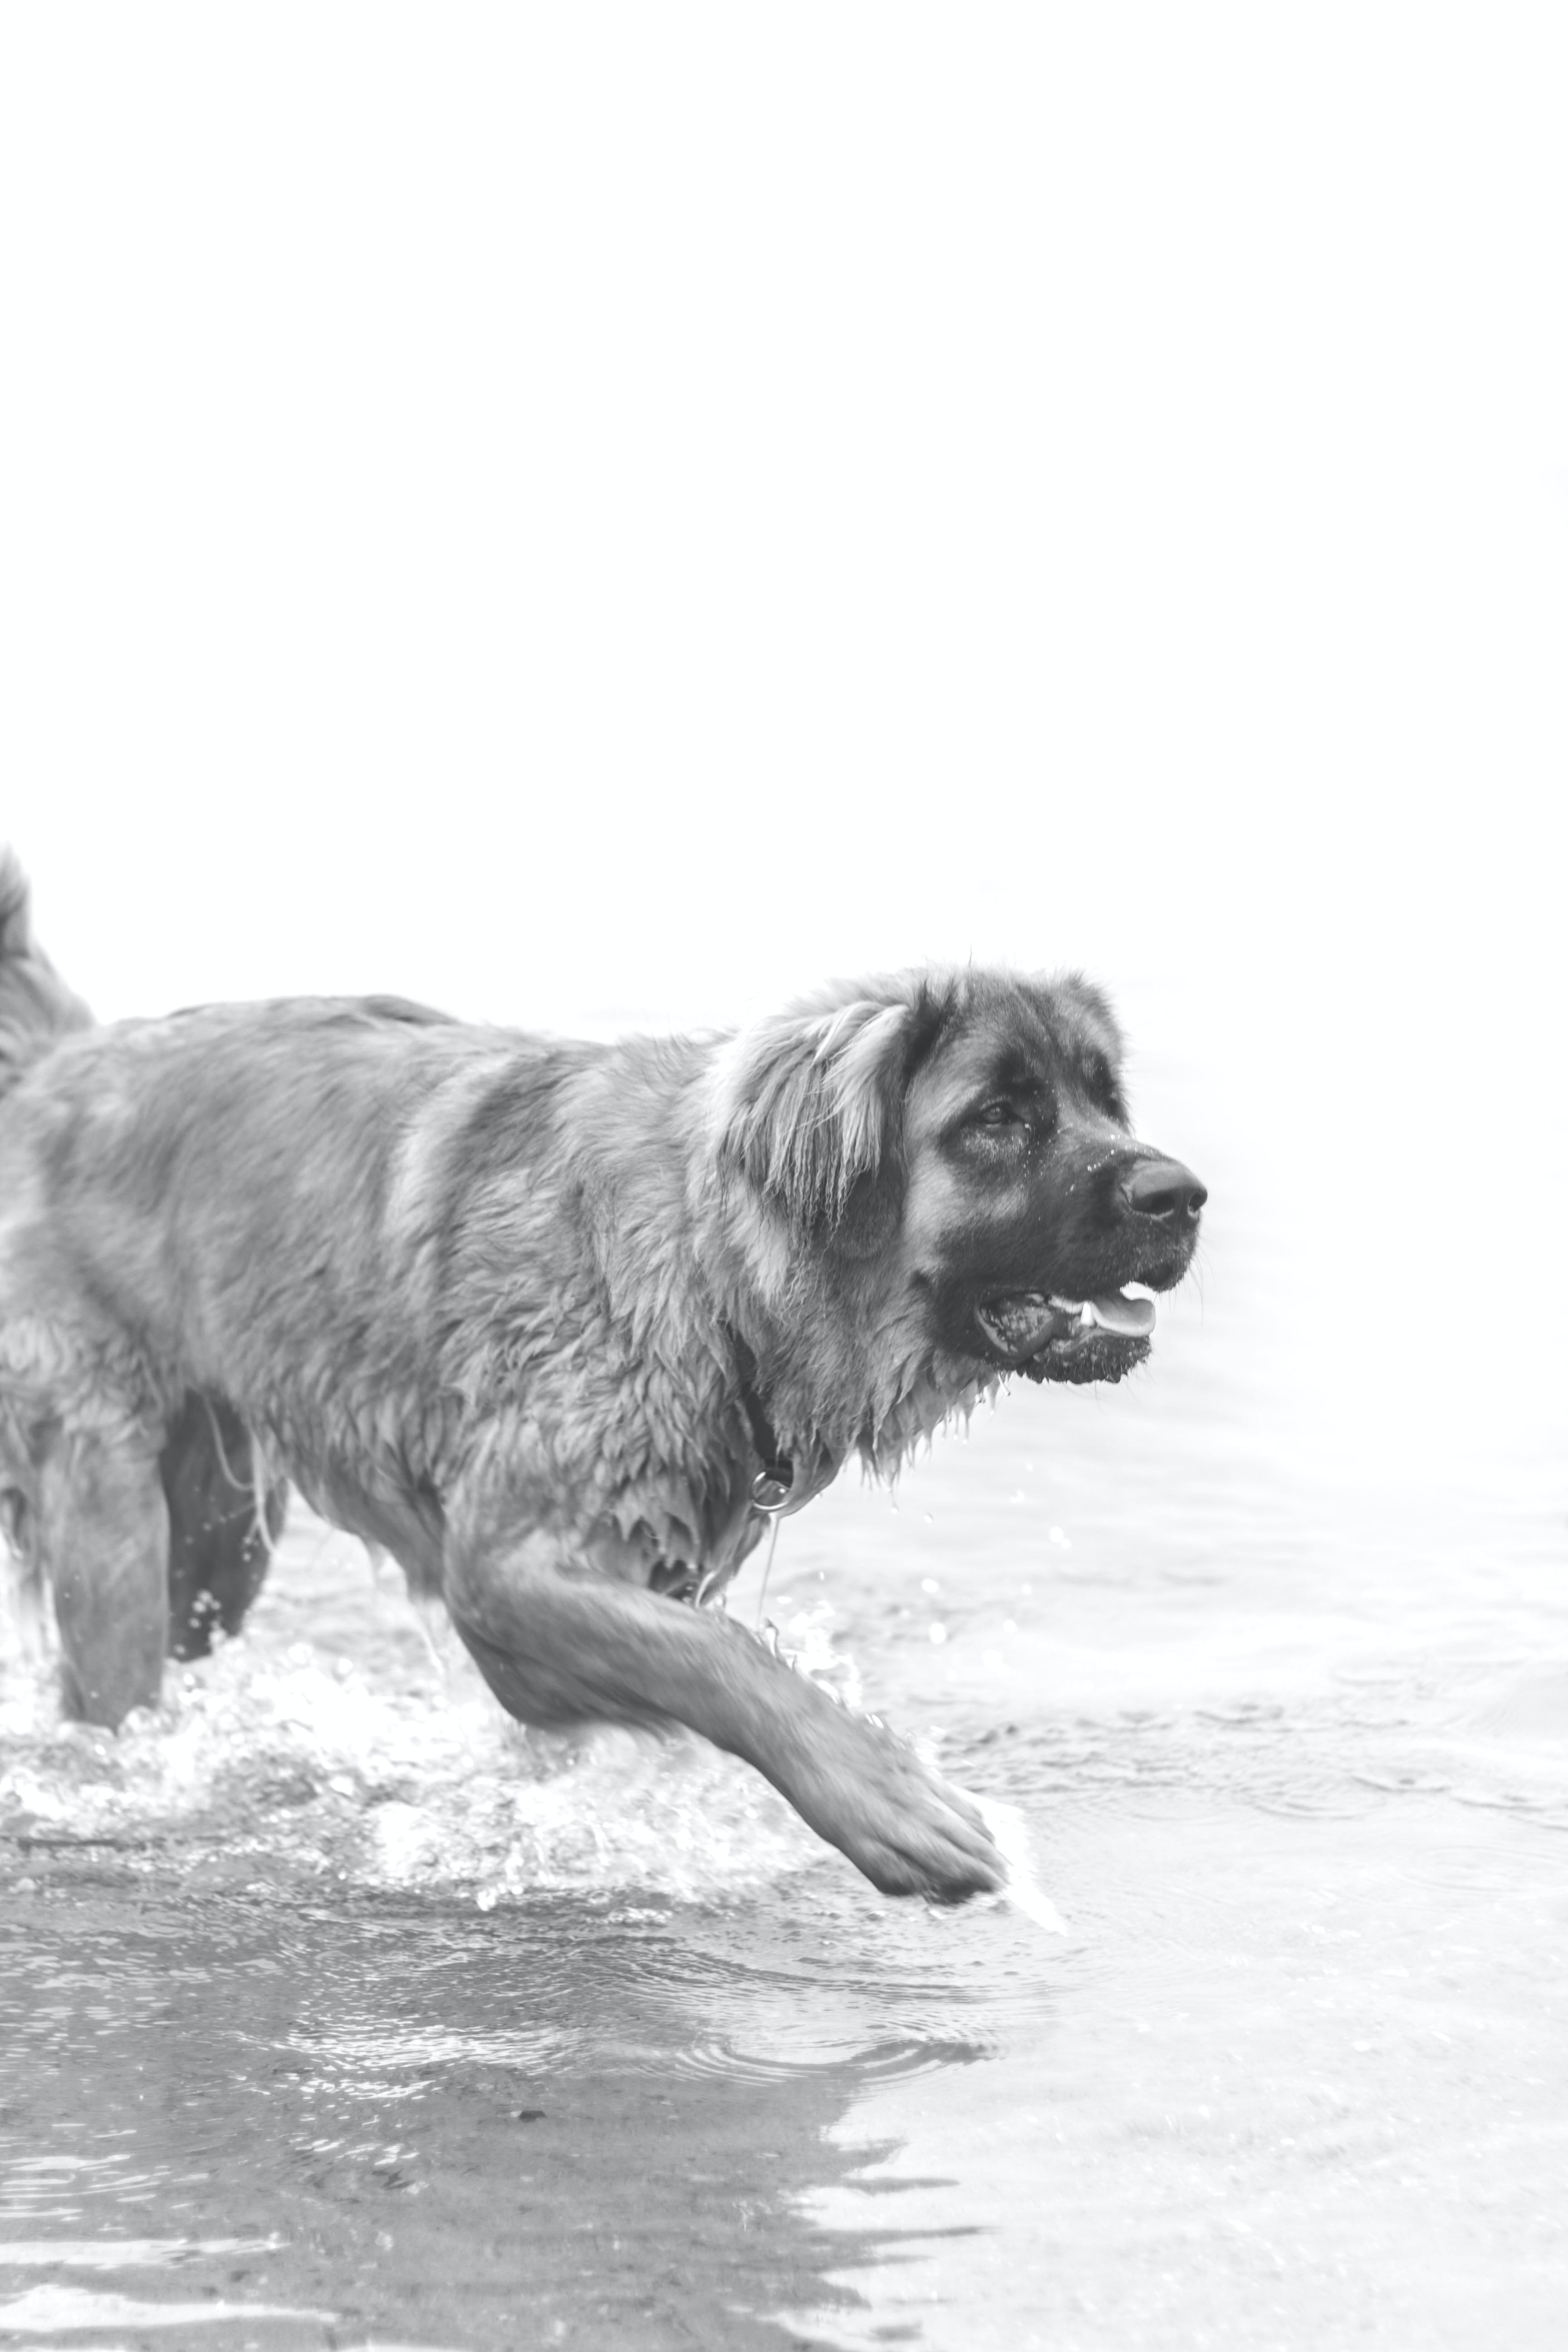 Free stock photo of black-and-white, dog, water